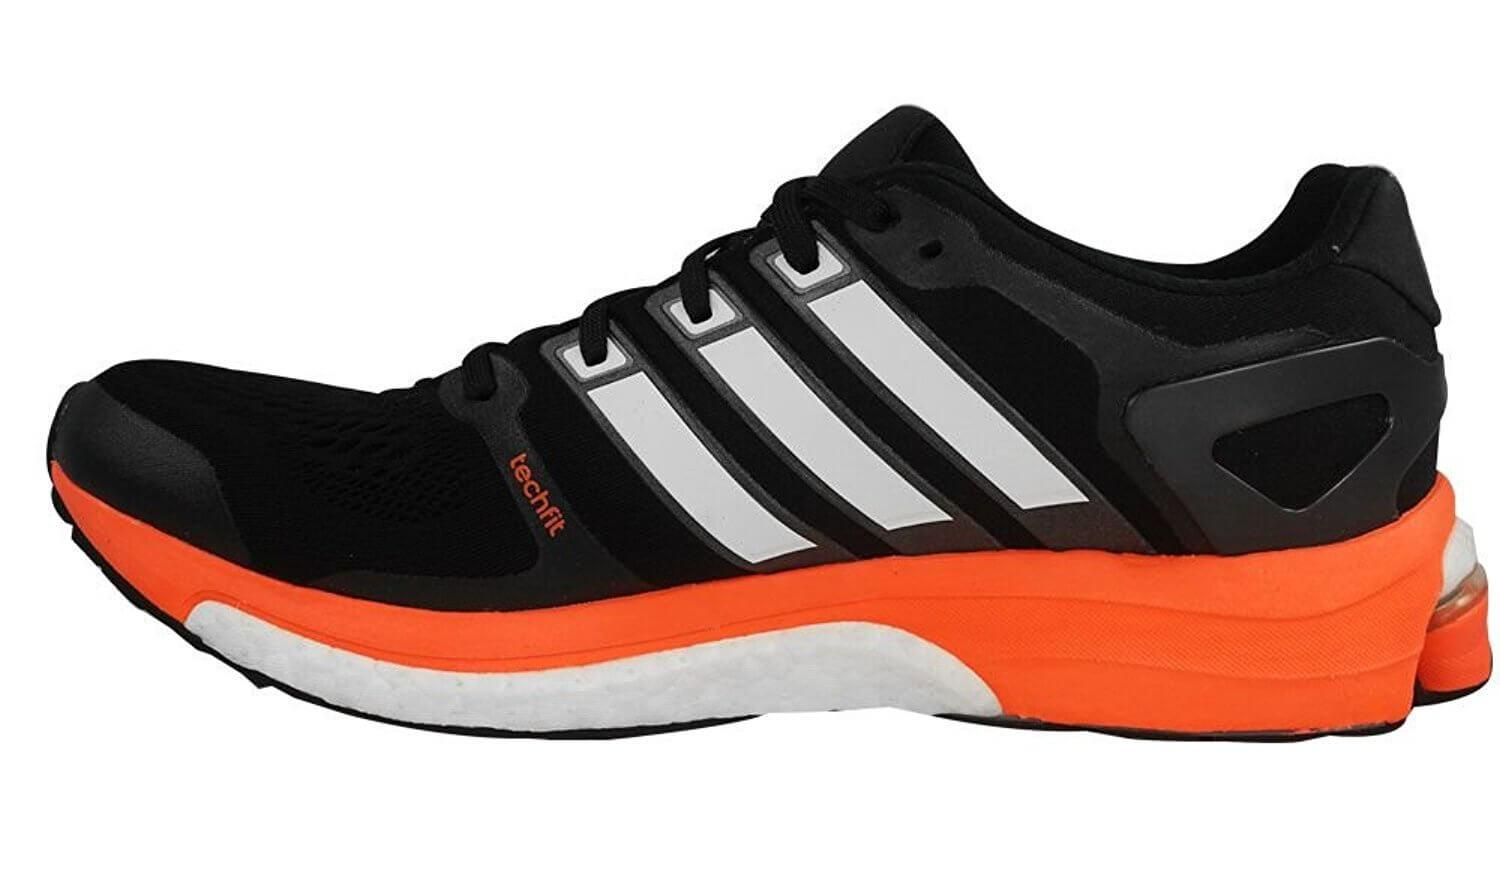 ... Adidas Adistar Boost ESM midsole technology for responsiveness ... 7541bf0fc